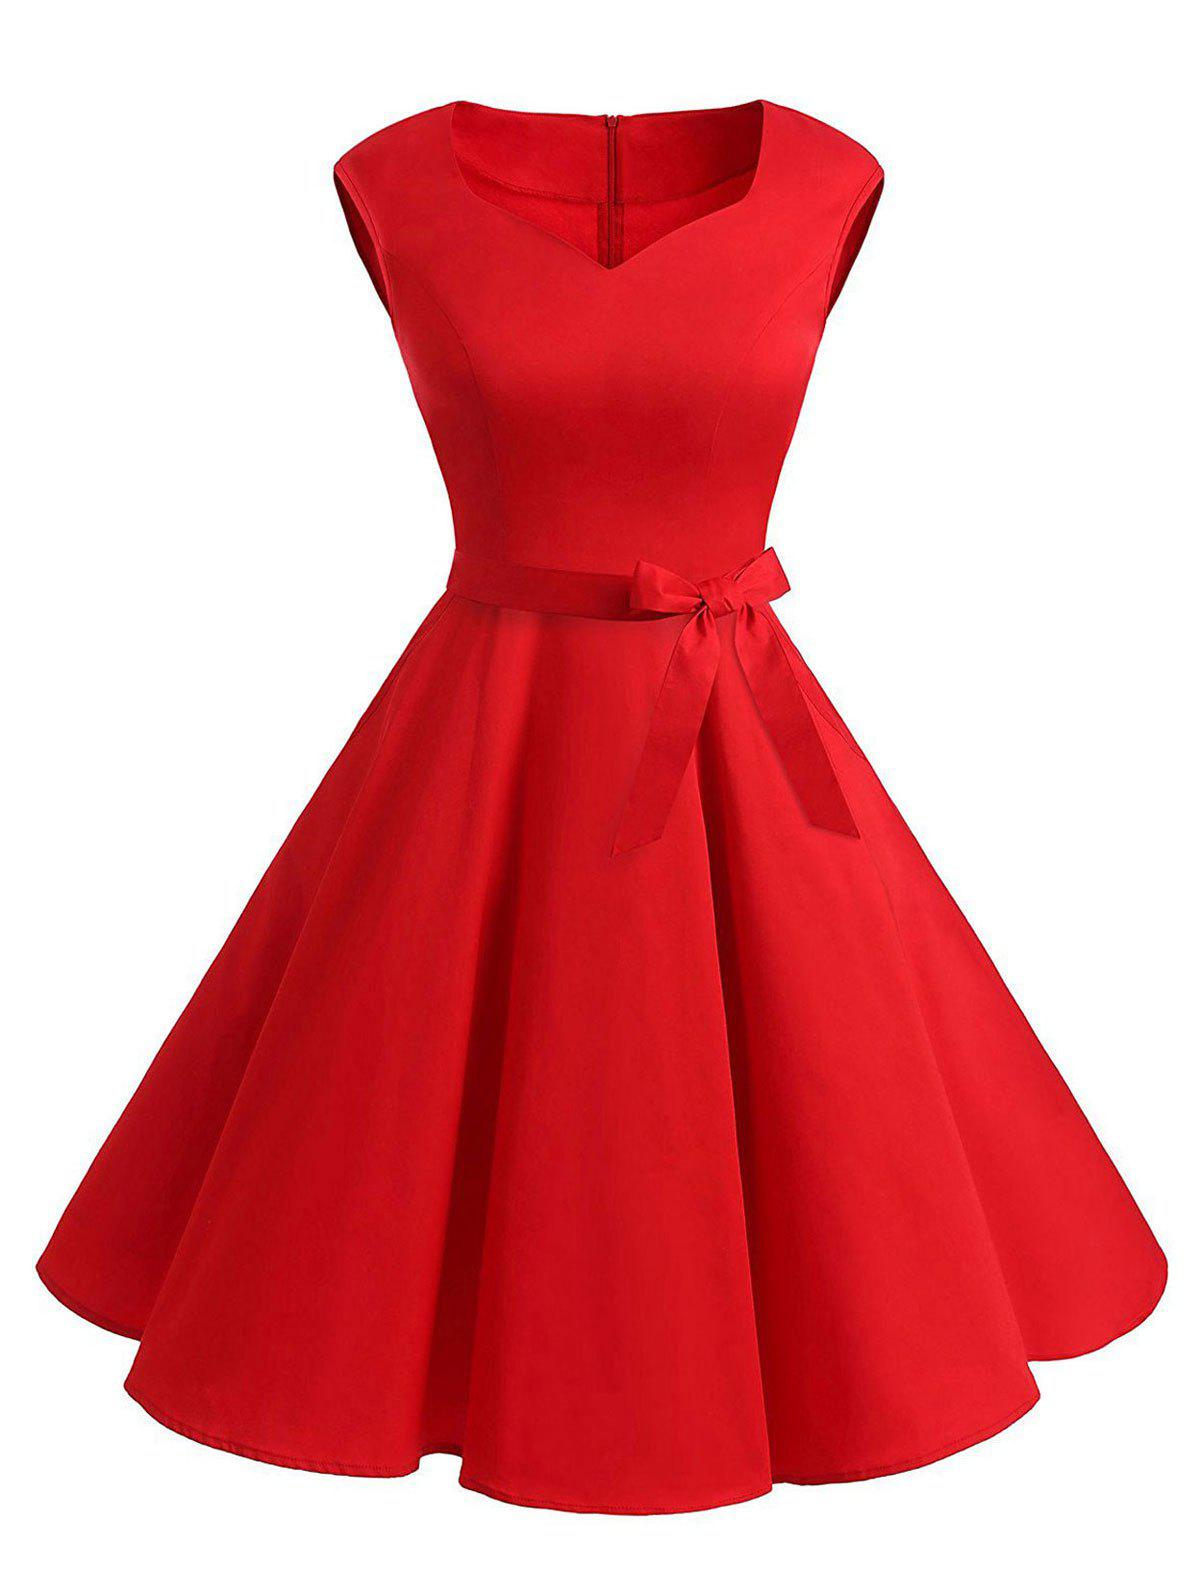 V Neck Mini Skate Party DressWOMEN<br><br>Size: M; Color: RED; Style: Vintage; Material: Cotton,Polyester; Silhouette: A-Line; Dresses Length: Mini; Neckline: V-Neck; Sleeve Length: Sleeveless; Pattern Type: Solid; With Belt: Yes; Season: Fall,Spring,Summer; Weight: 0.3700kg; Package Contents: 1 x Dress   1x Belt;